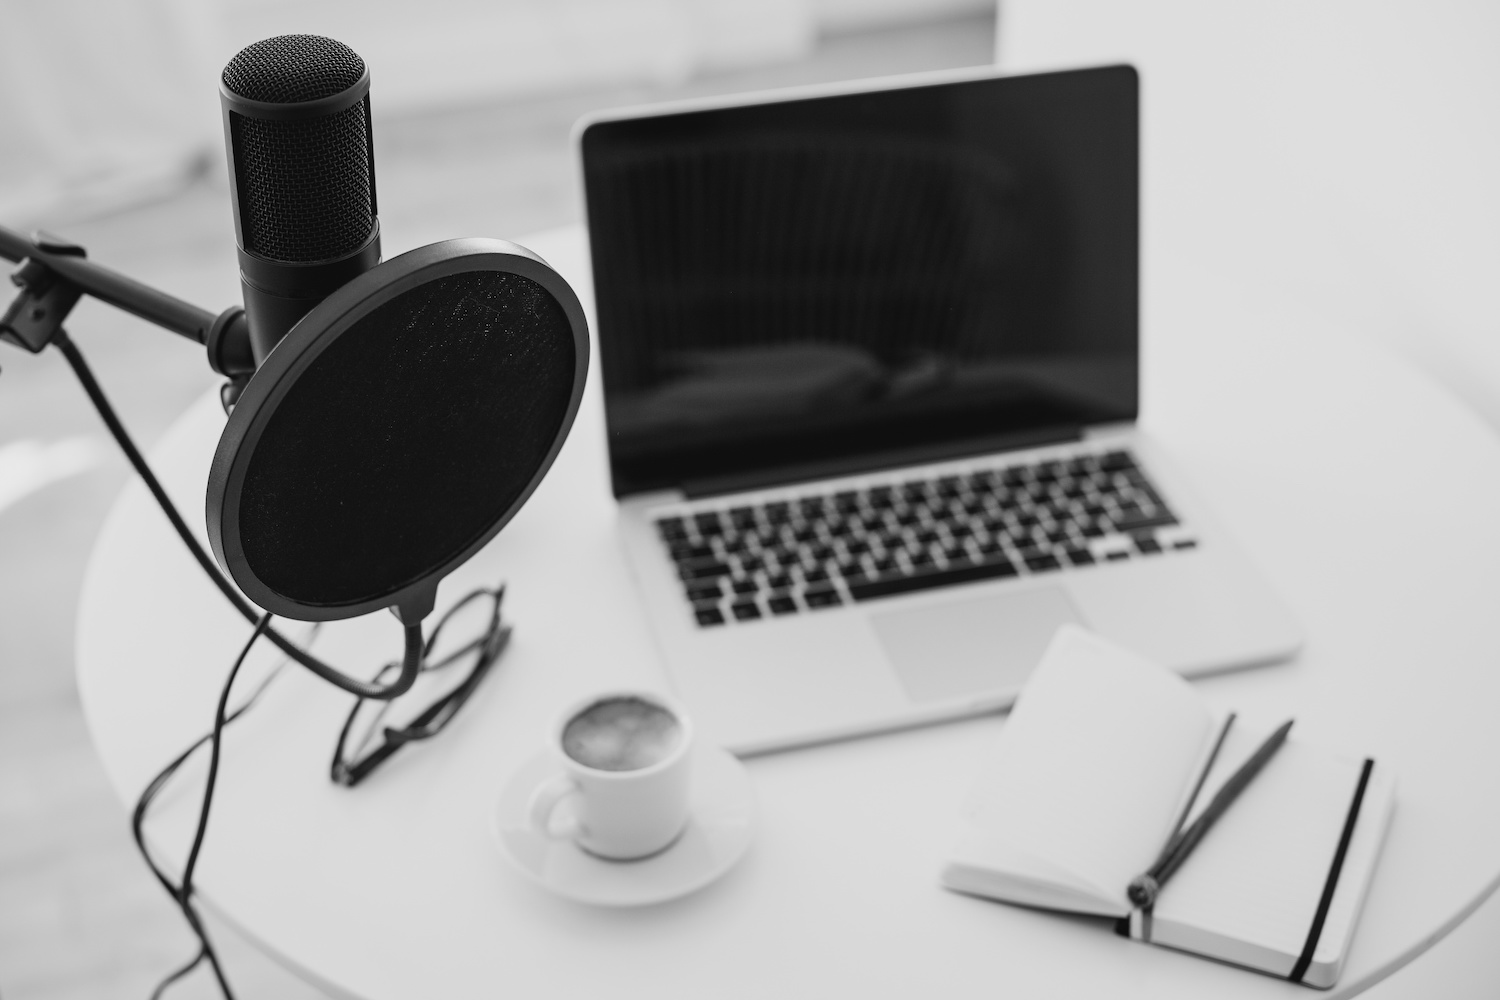 Podcast 8 – Sales, marketing & distribution: How do you sustain your sales, marketing and distribution efforts in the new world?